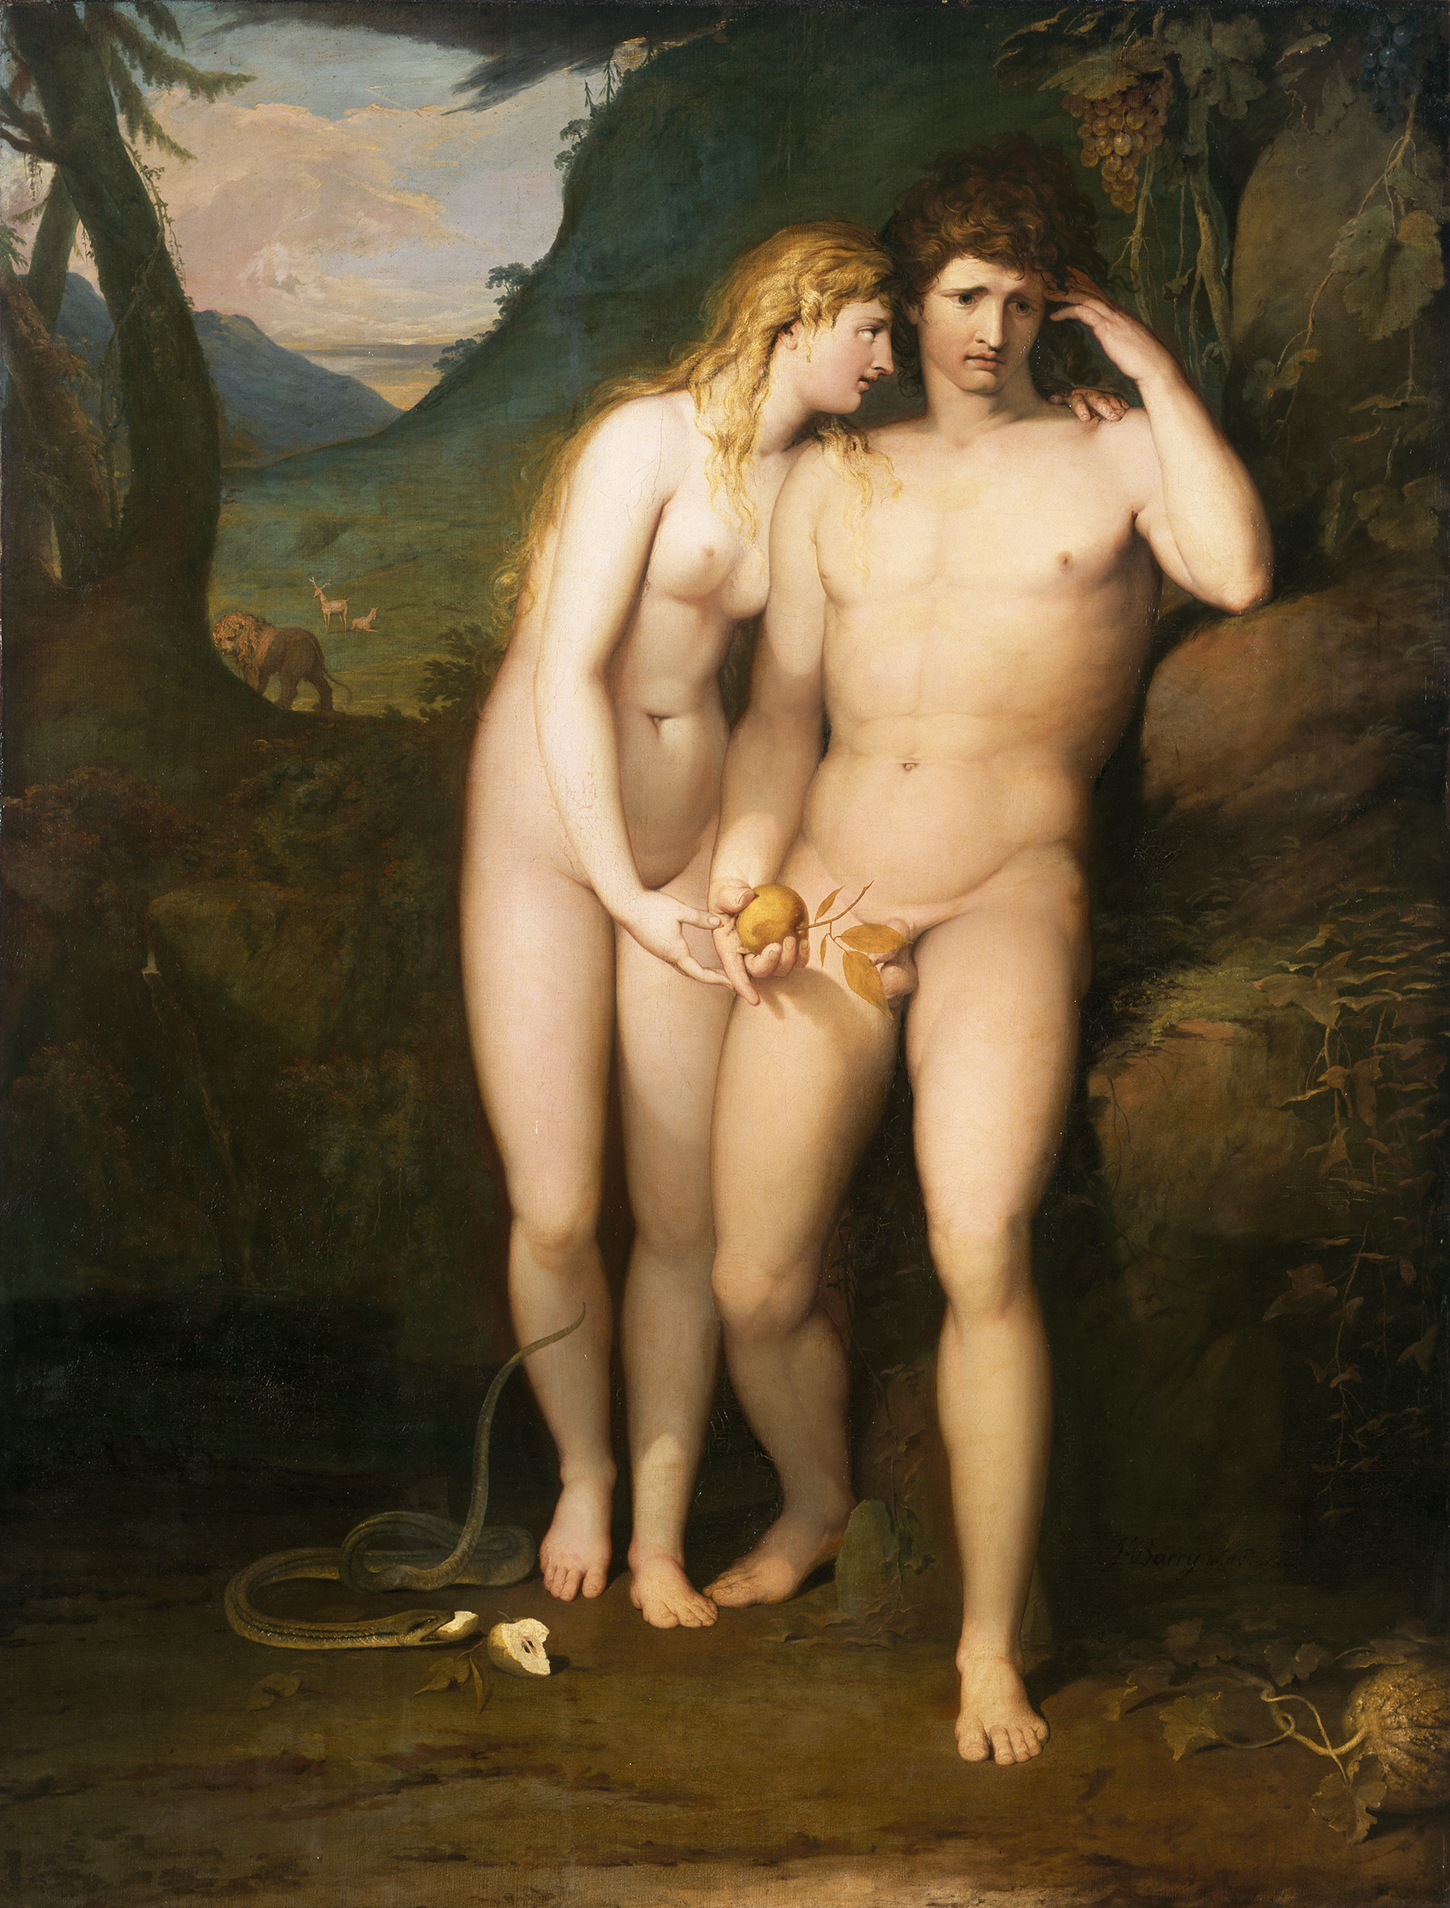 Adam and Eve stand together. On the ground, a snake, and a discarded half-eaten apple.